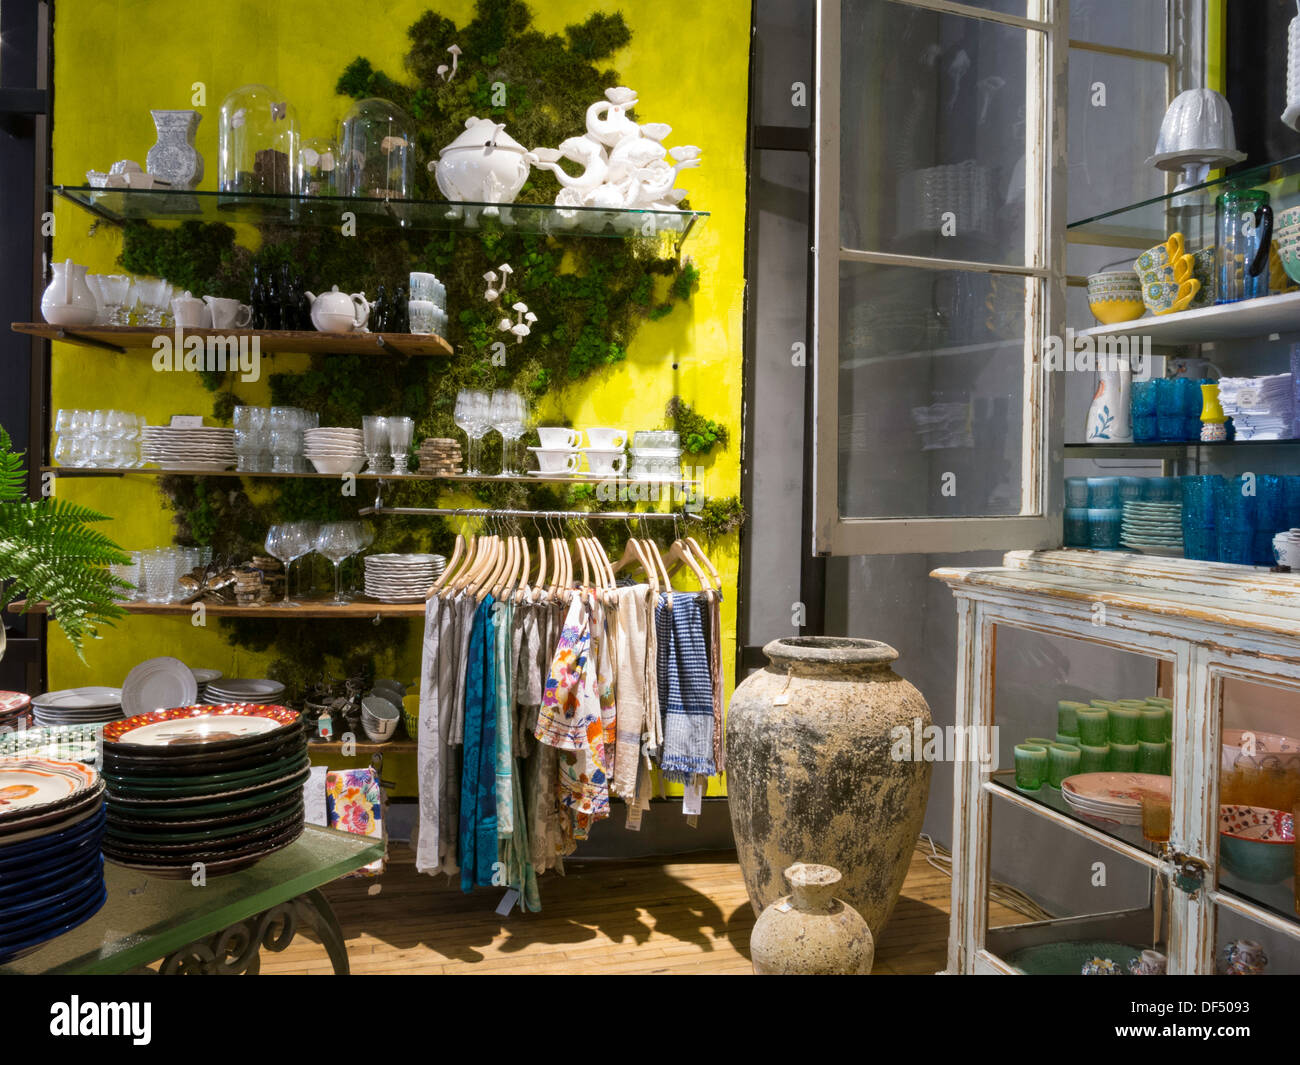 anthropologie store interior nyc stock photo royalty free image 60960959 alamy. Black Bedroom Furniture Sets. Home Design Ideas